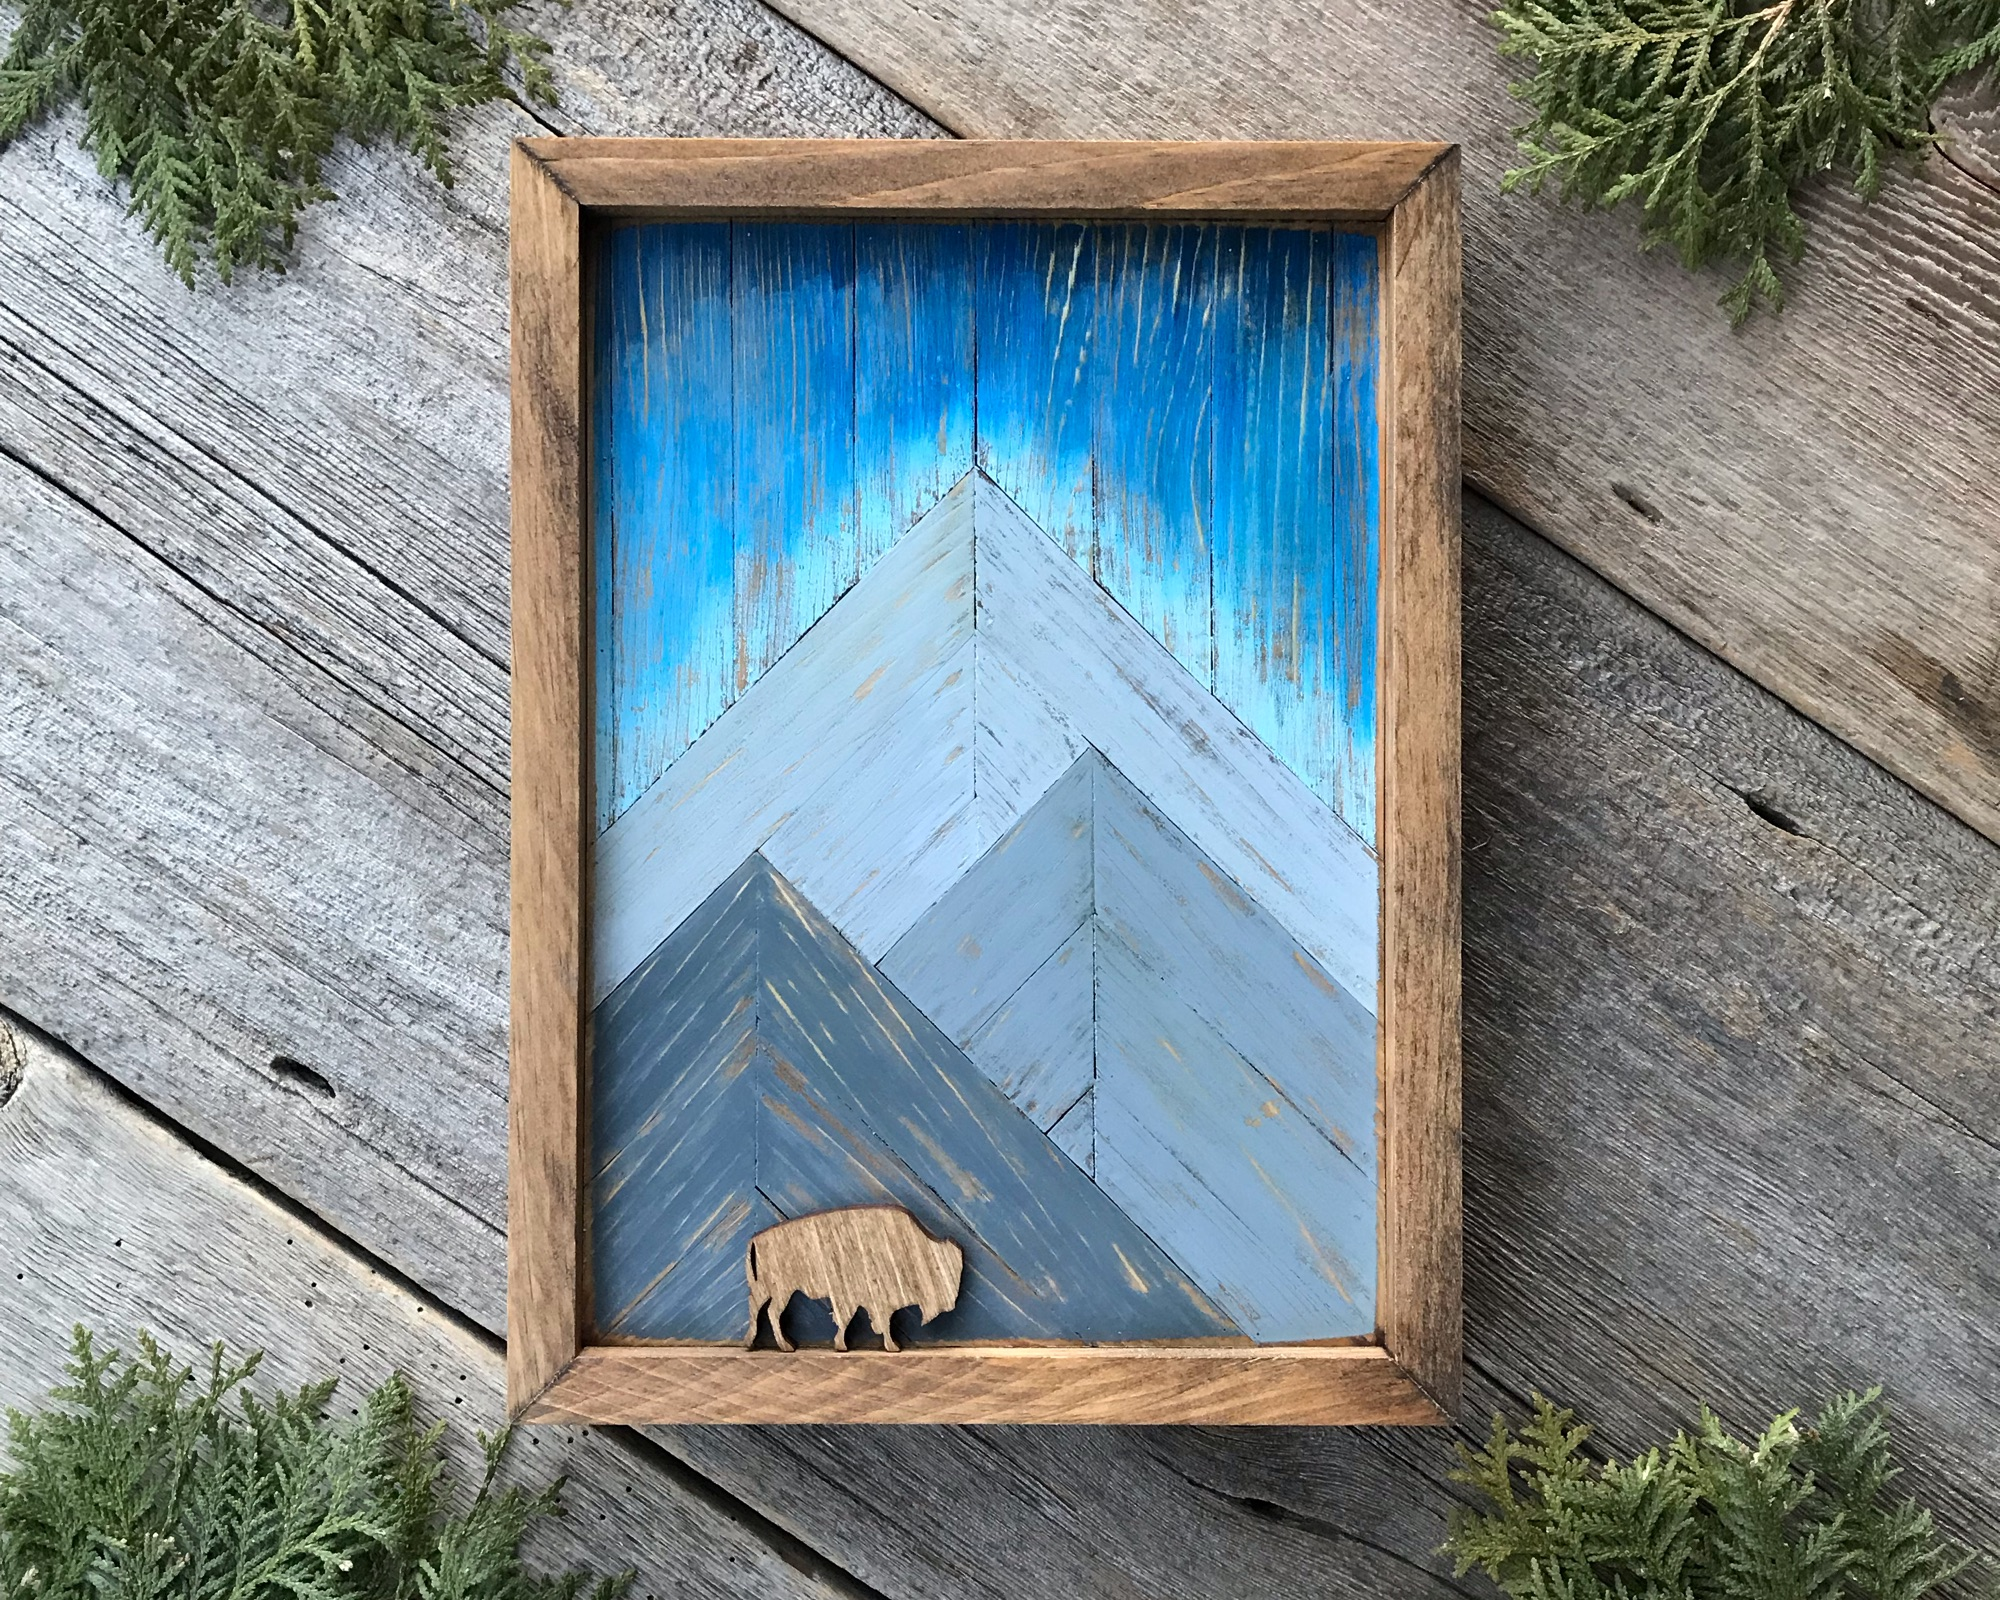 Mountain Wall Art, Wilderness and Wildlife Art, Rustic Home Decor for Cabin or Mountain Lodge